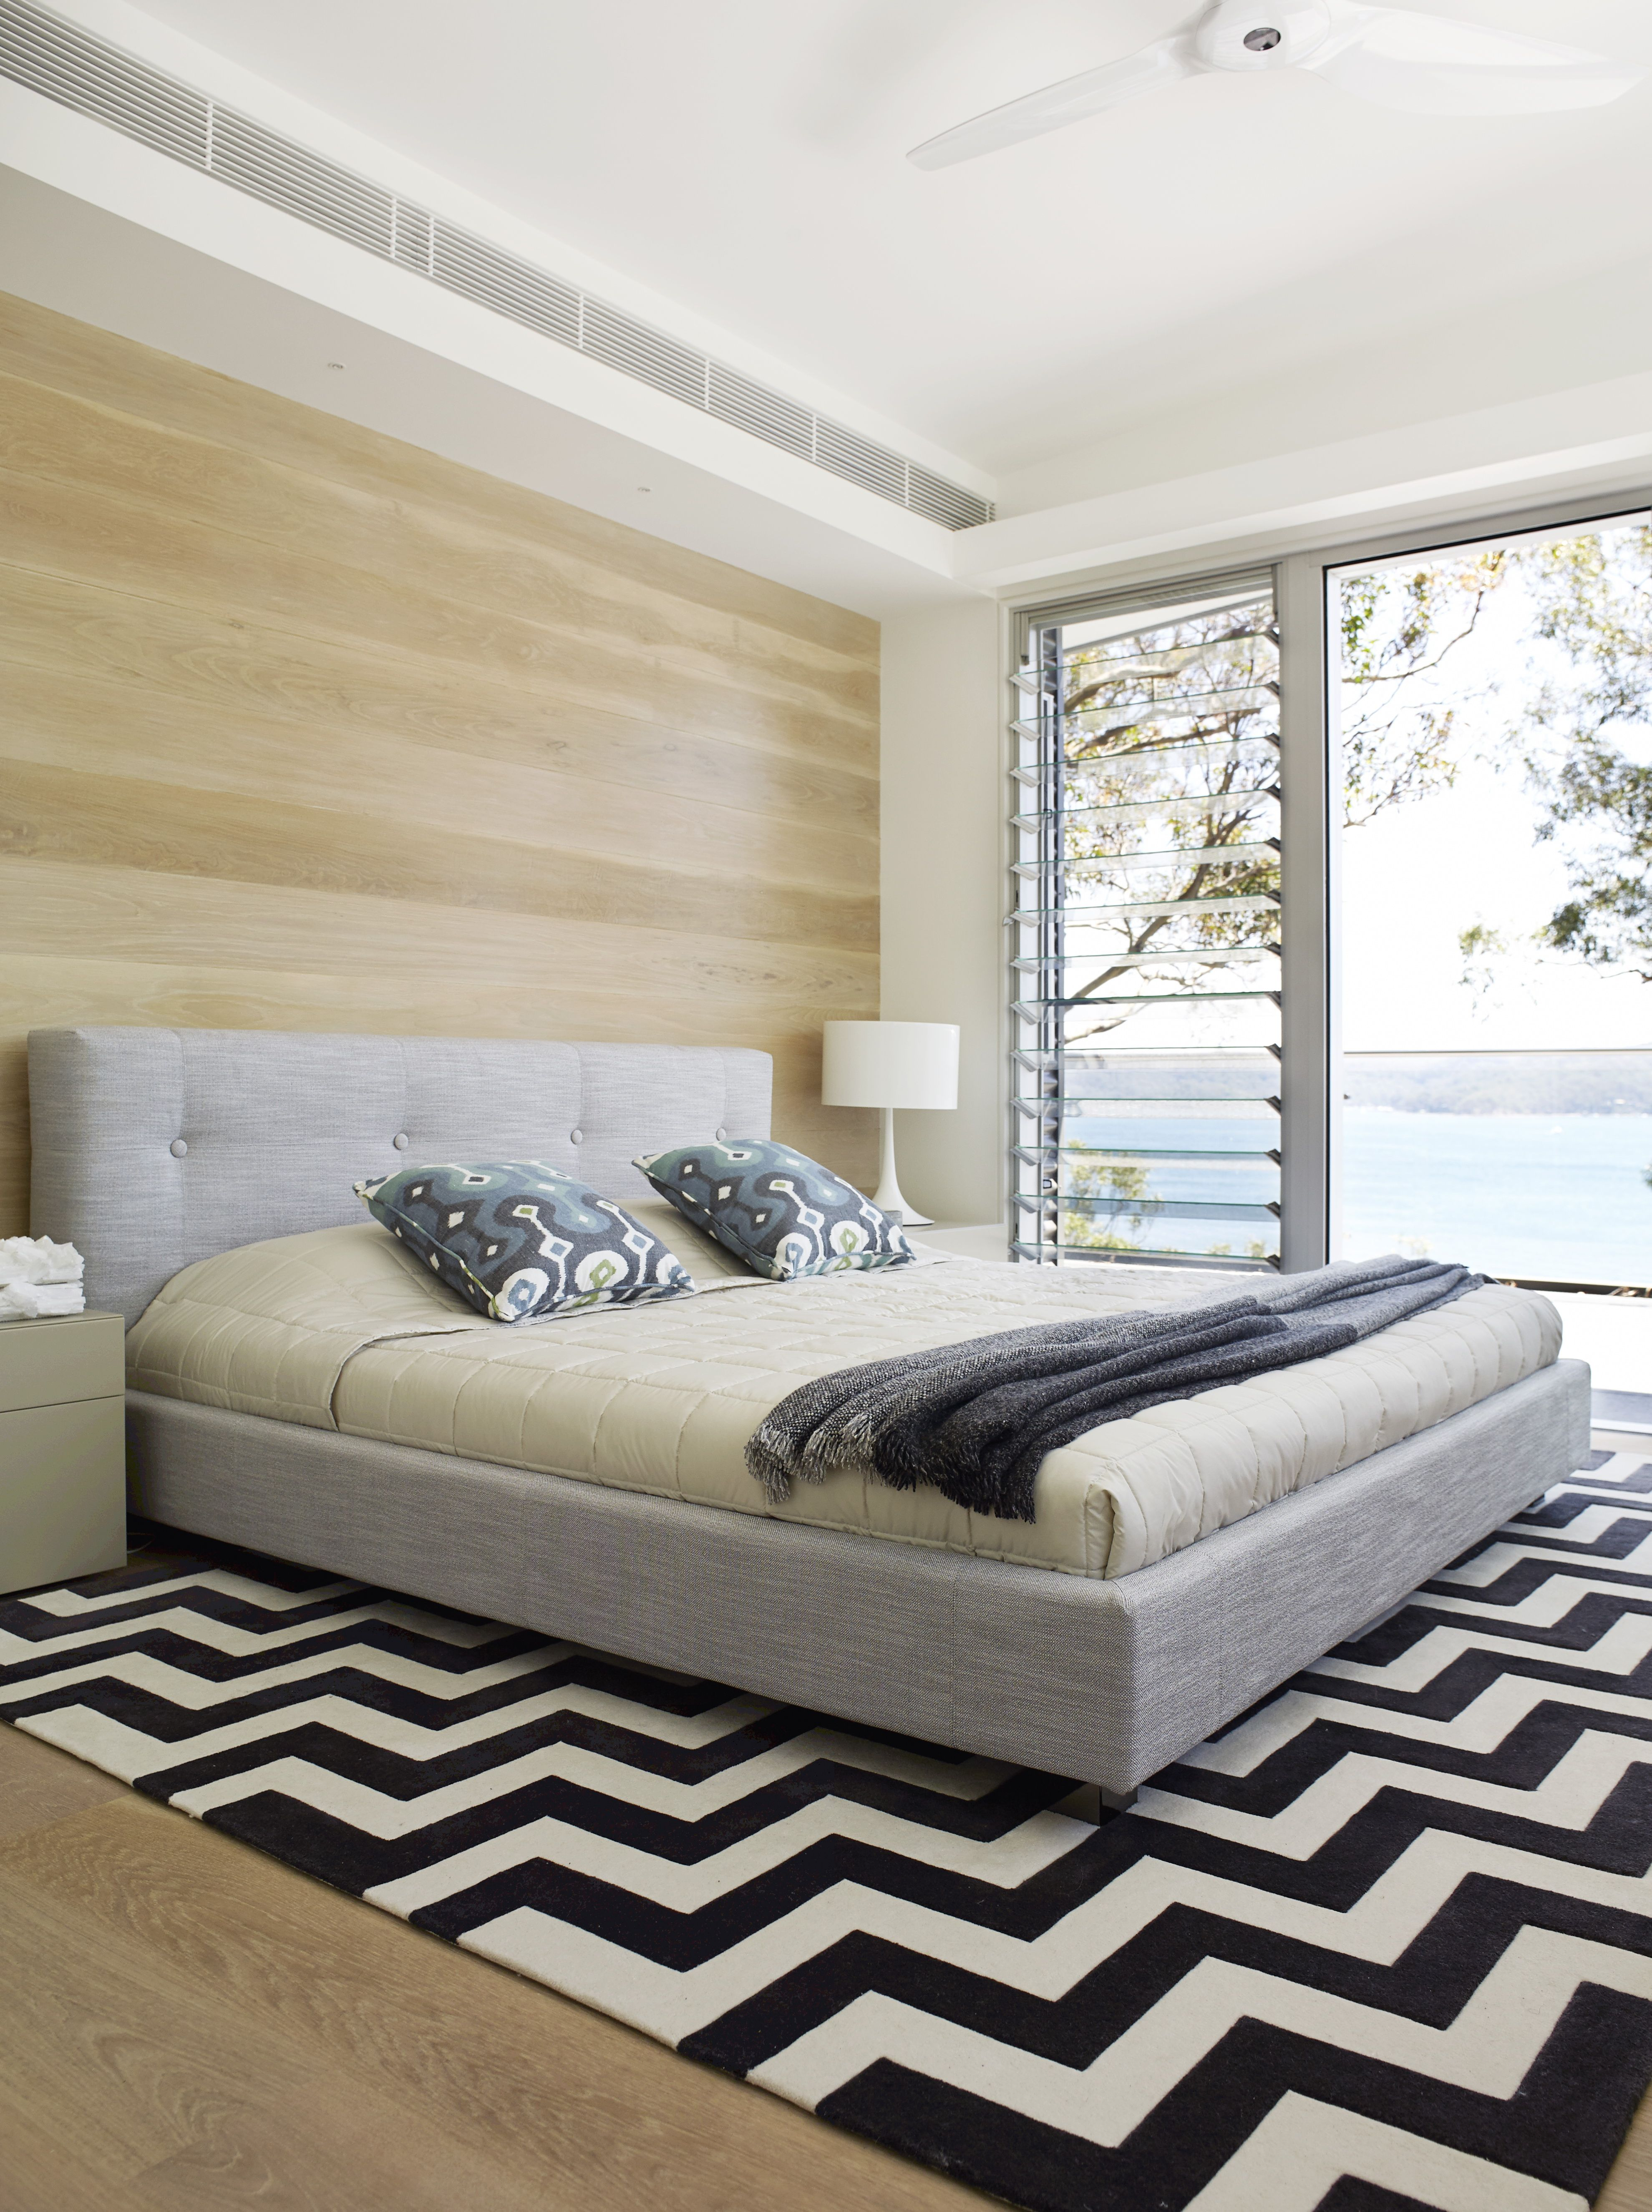 Beautiful Bedroom Design By Greg Natale Bedspread And Cushions By - B q bedroom designs